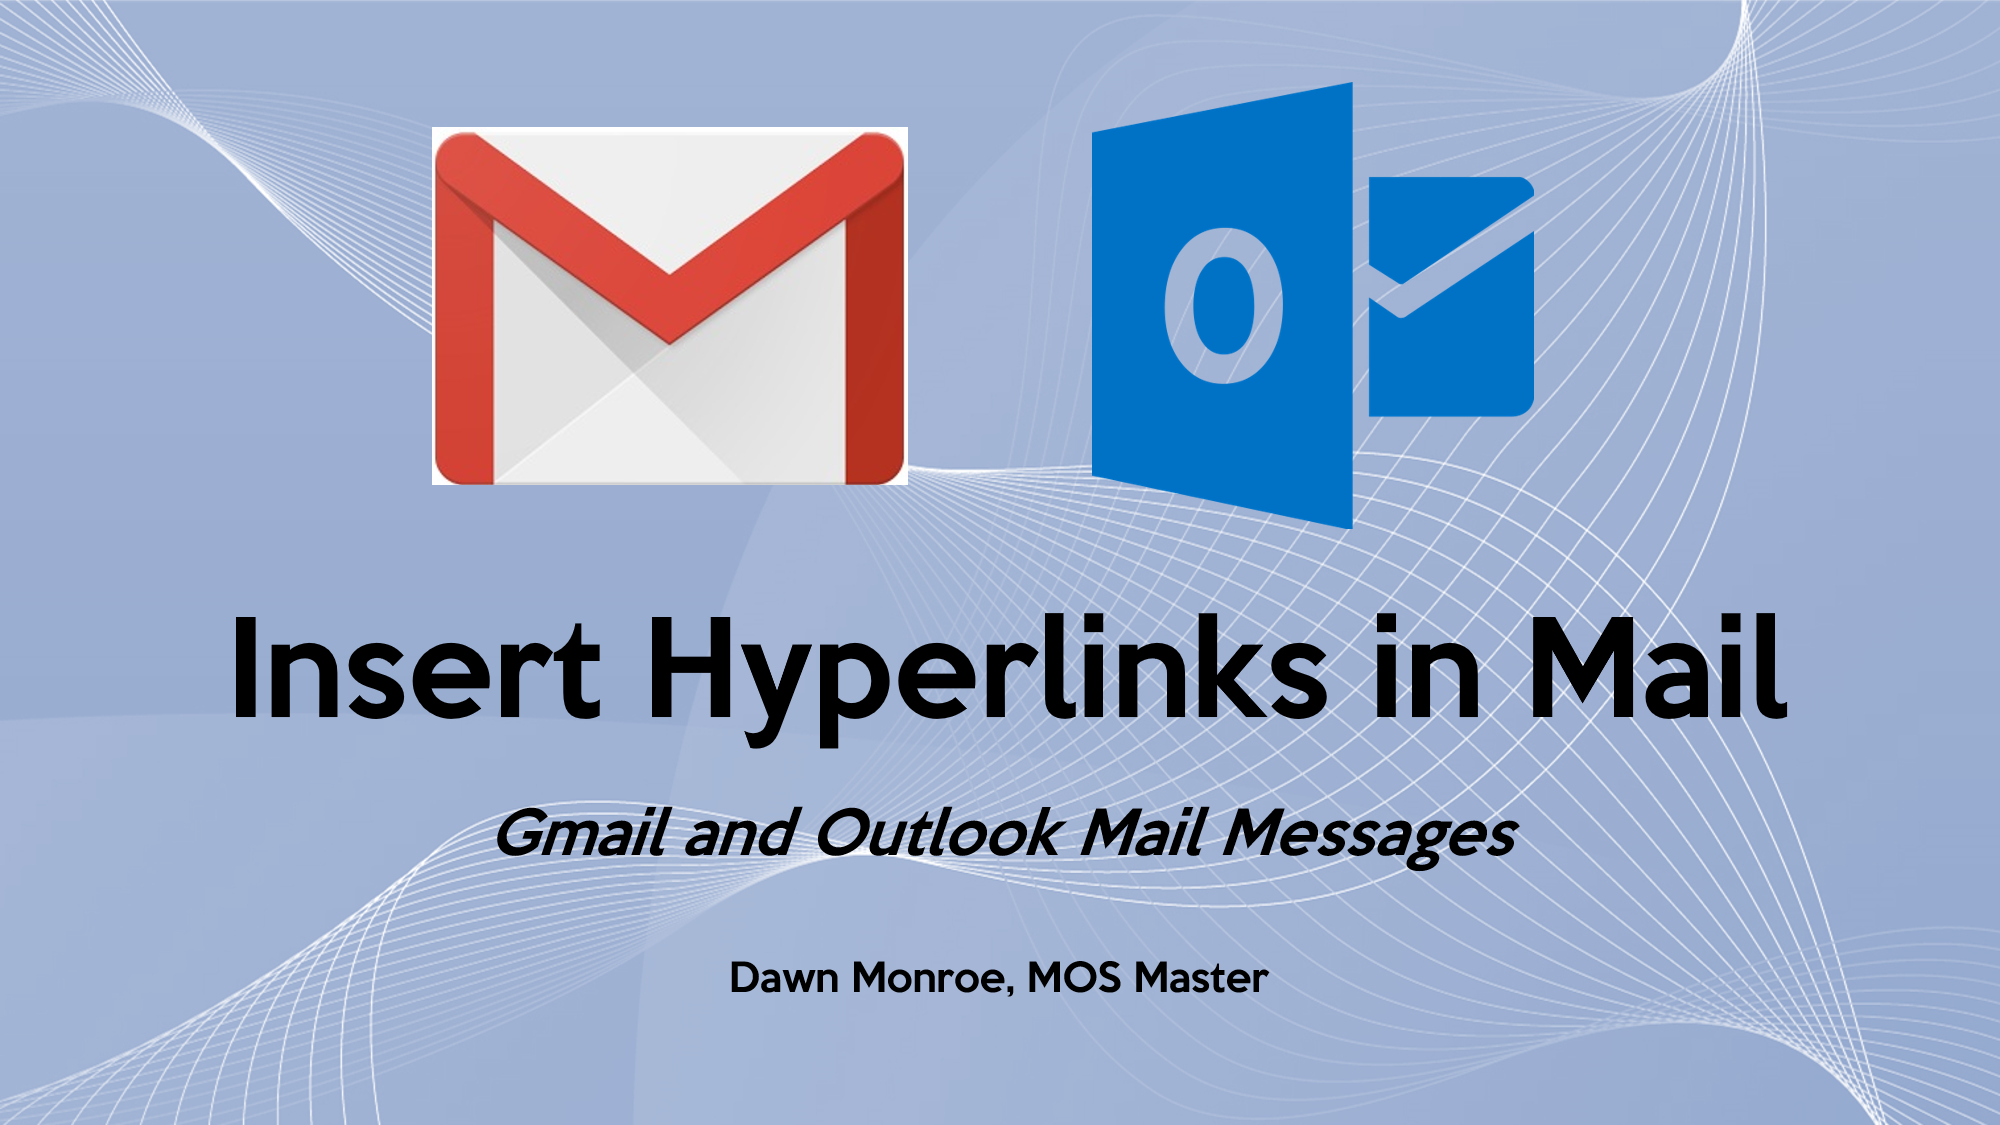 Insert Hyperlinks in Mail